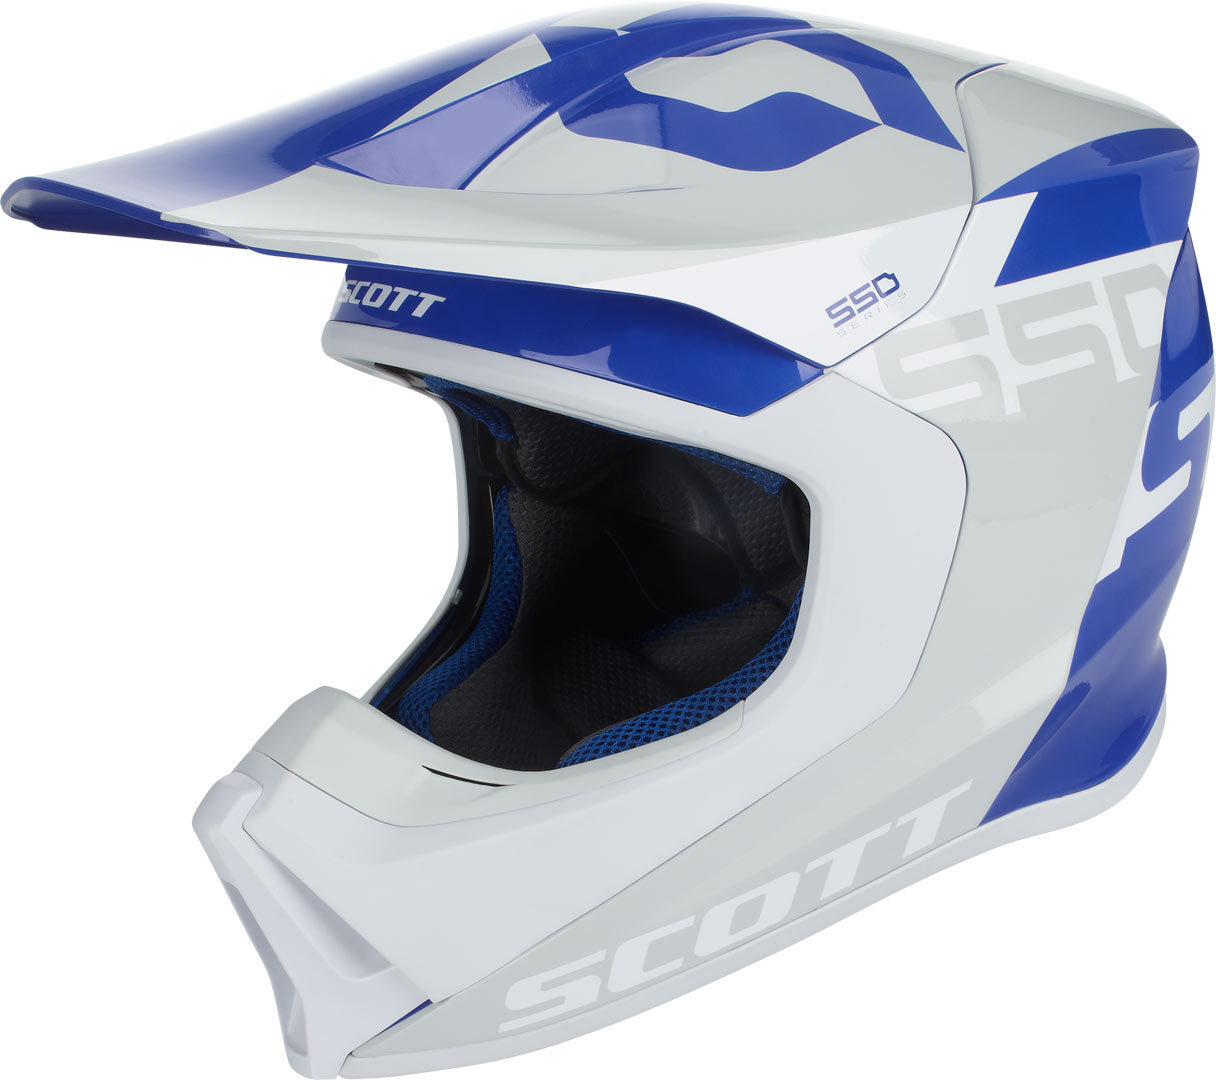 Casque cross et enduro Scott 550 WOODBLOCK Gris/Bleu  2018